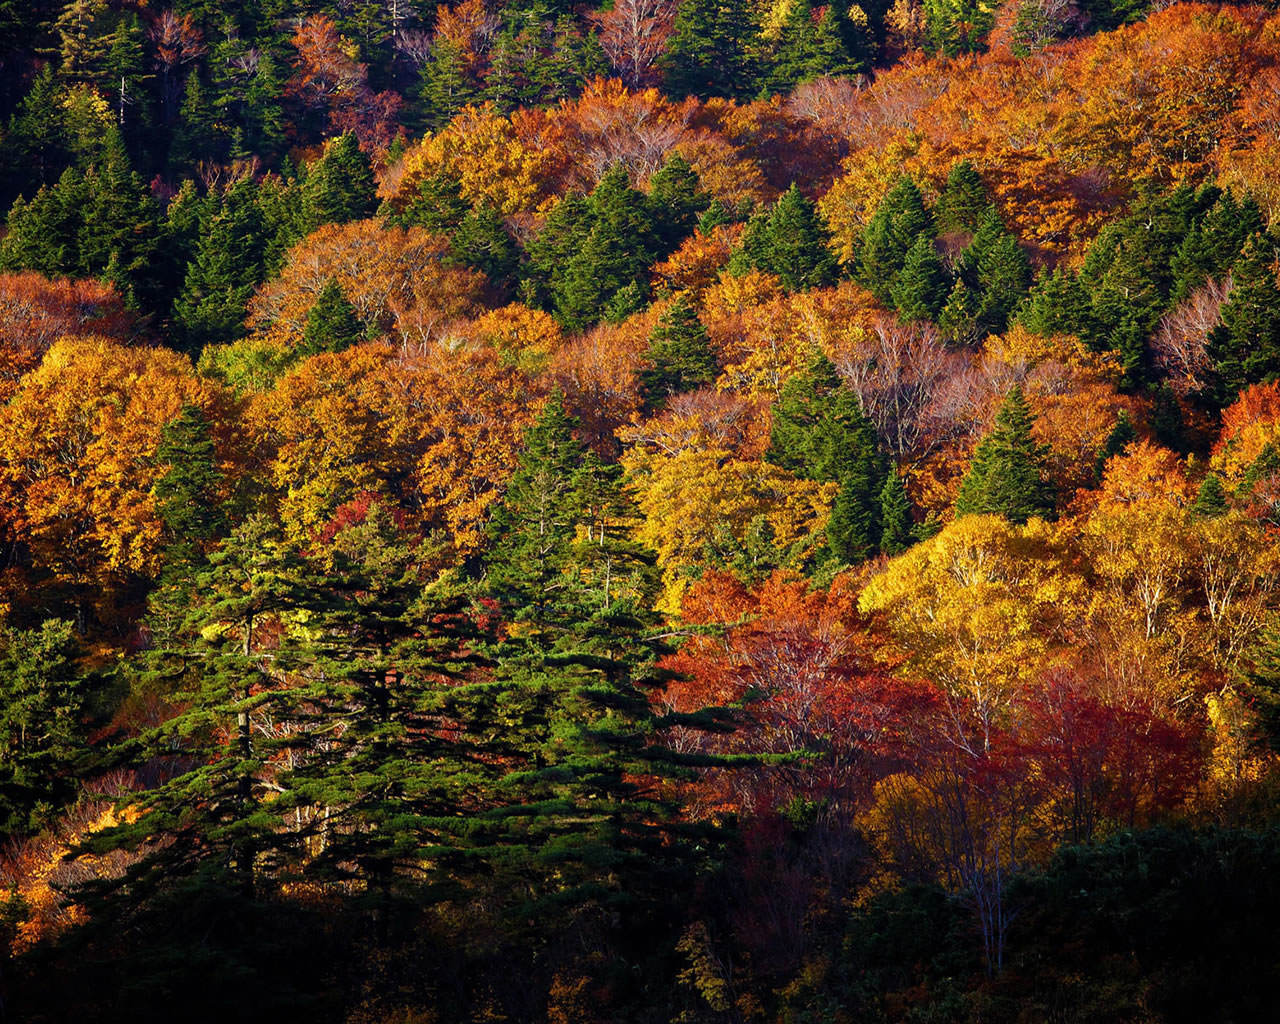 Autumn Trees Wallpaper 1280x1024